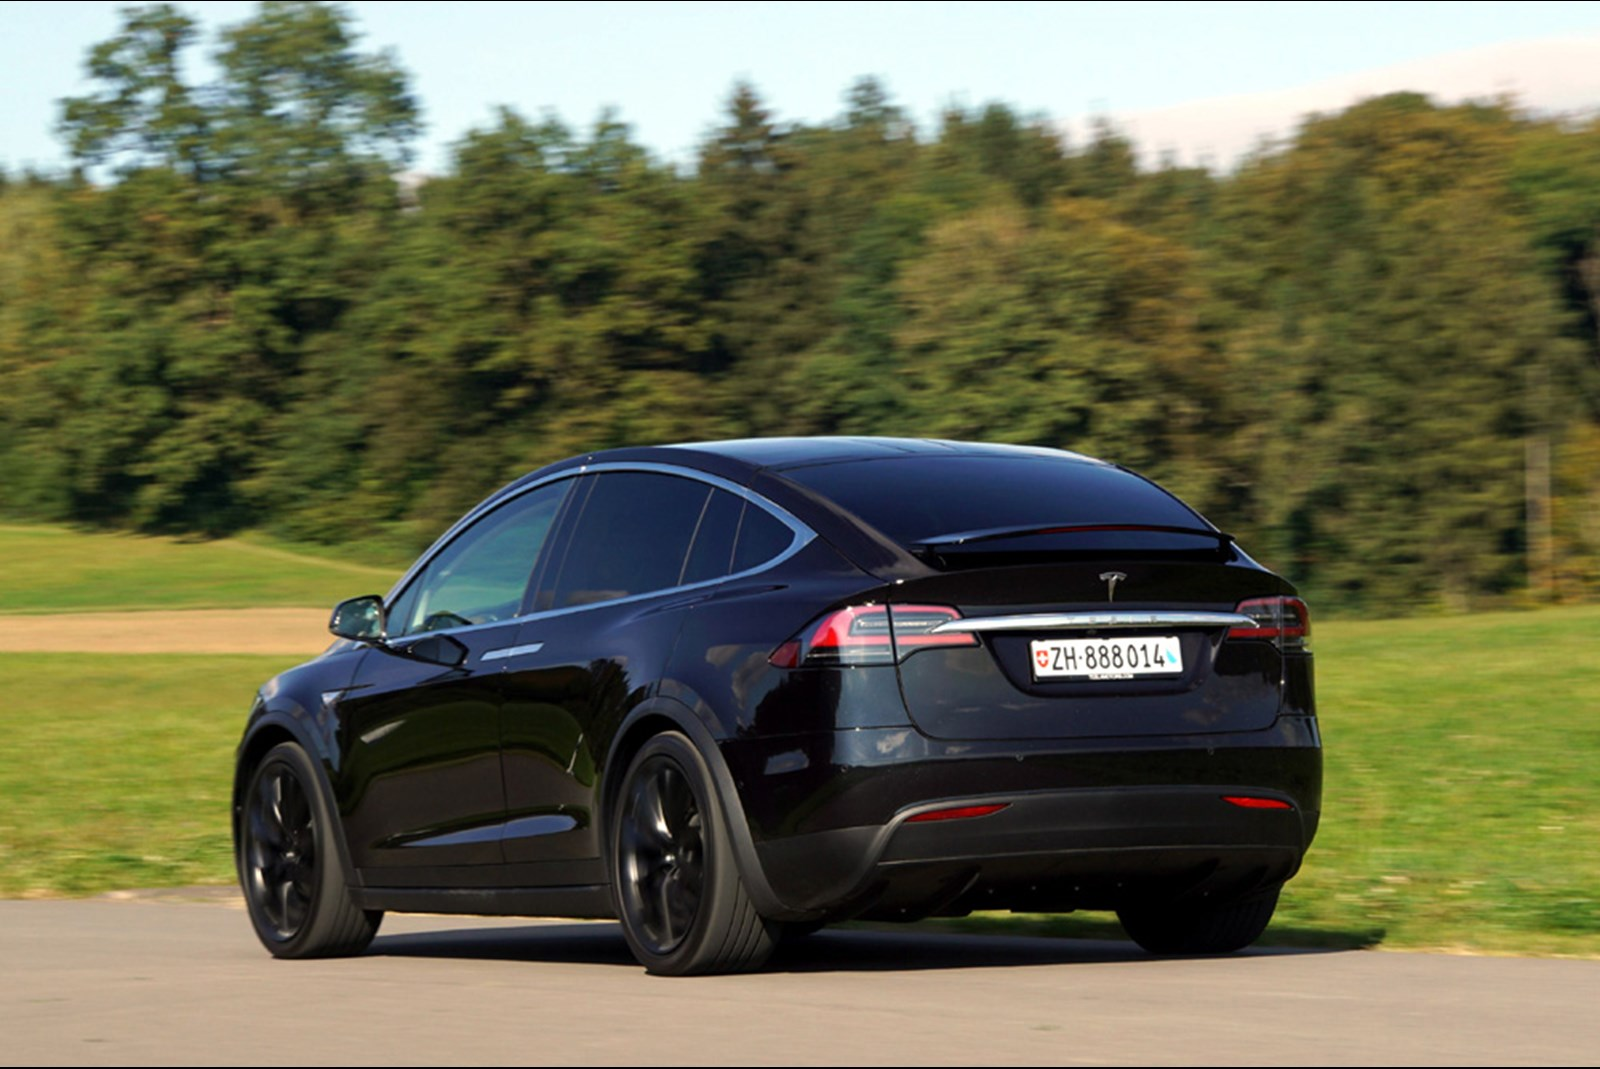 Tesla model x tesla model x im test 2016 for Mobel inserieren